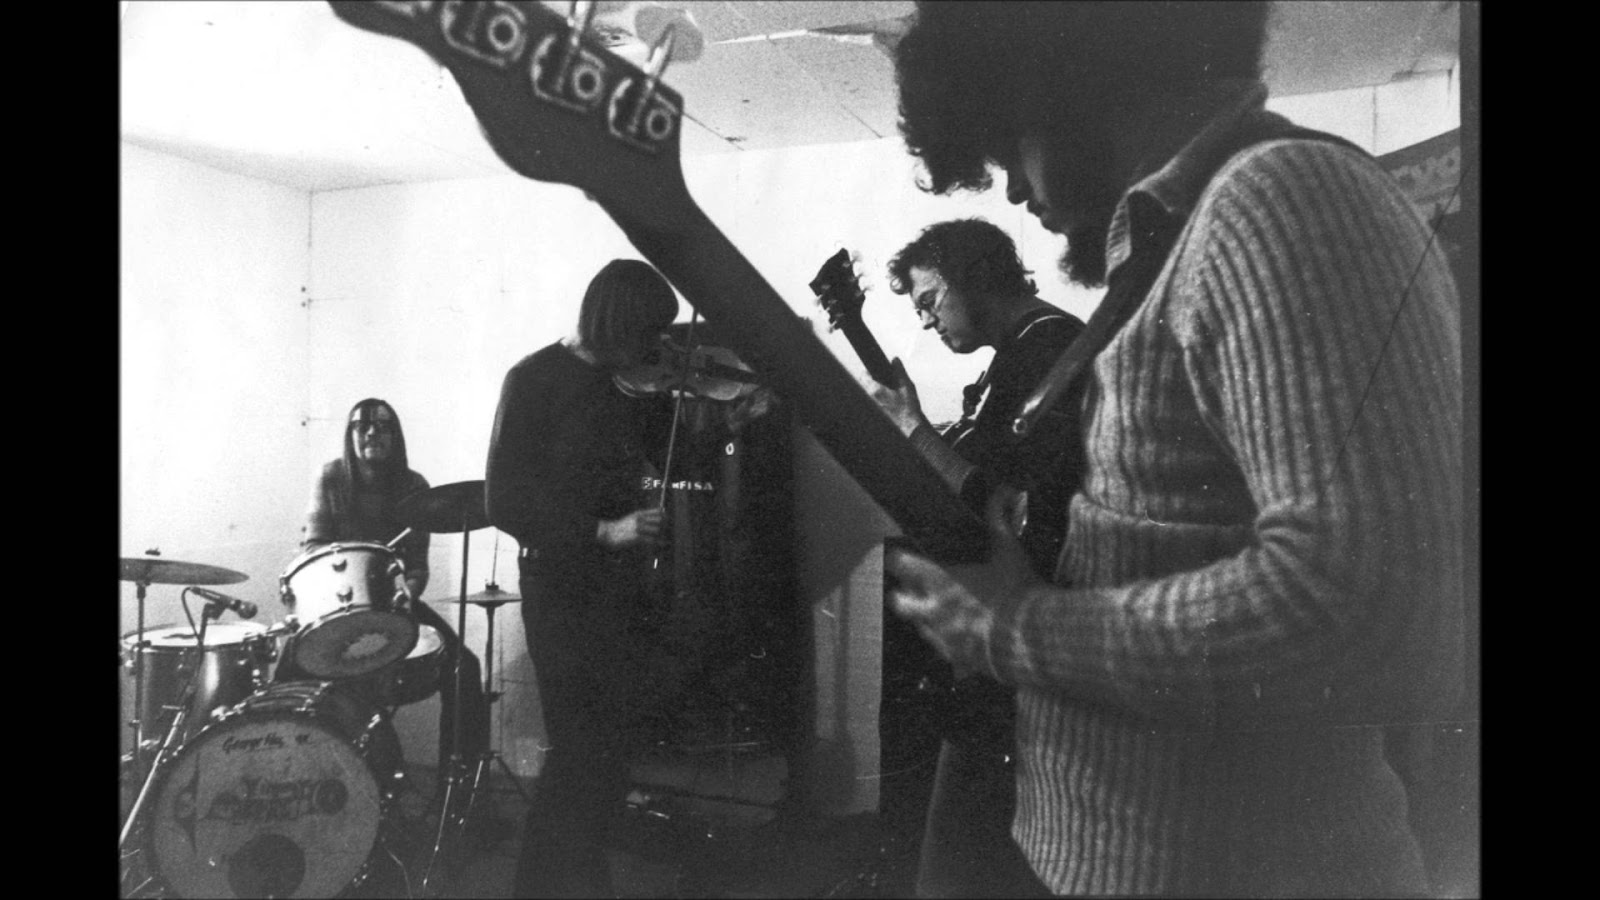 Embryo en el estudio en 1973.